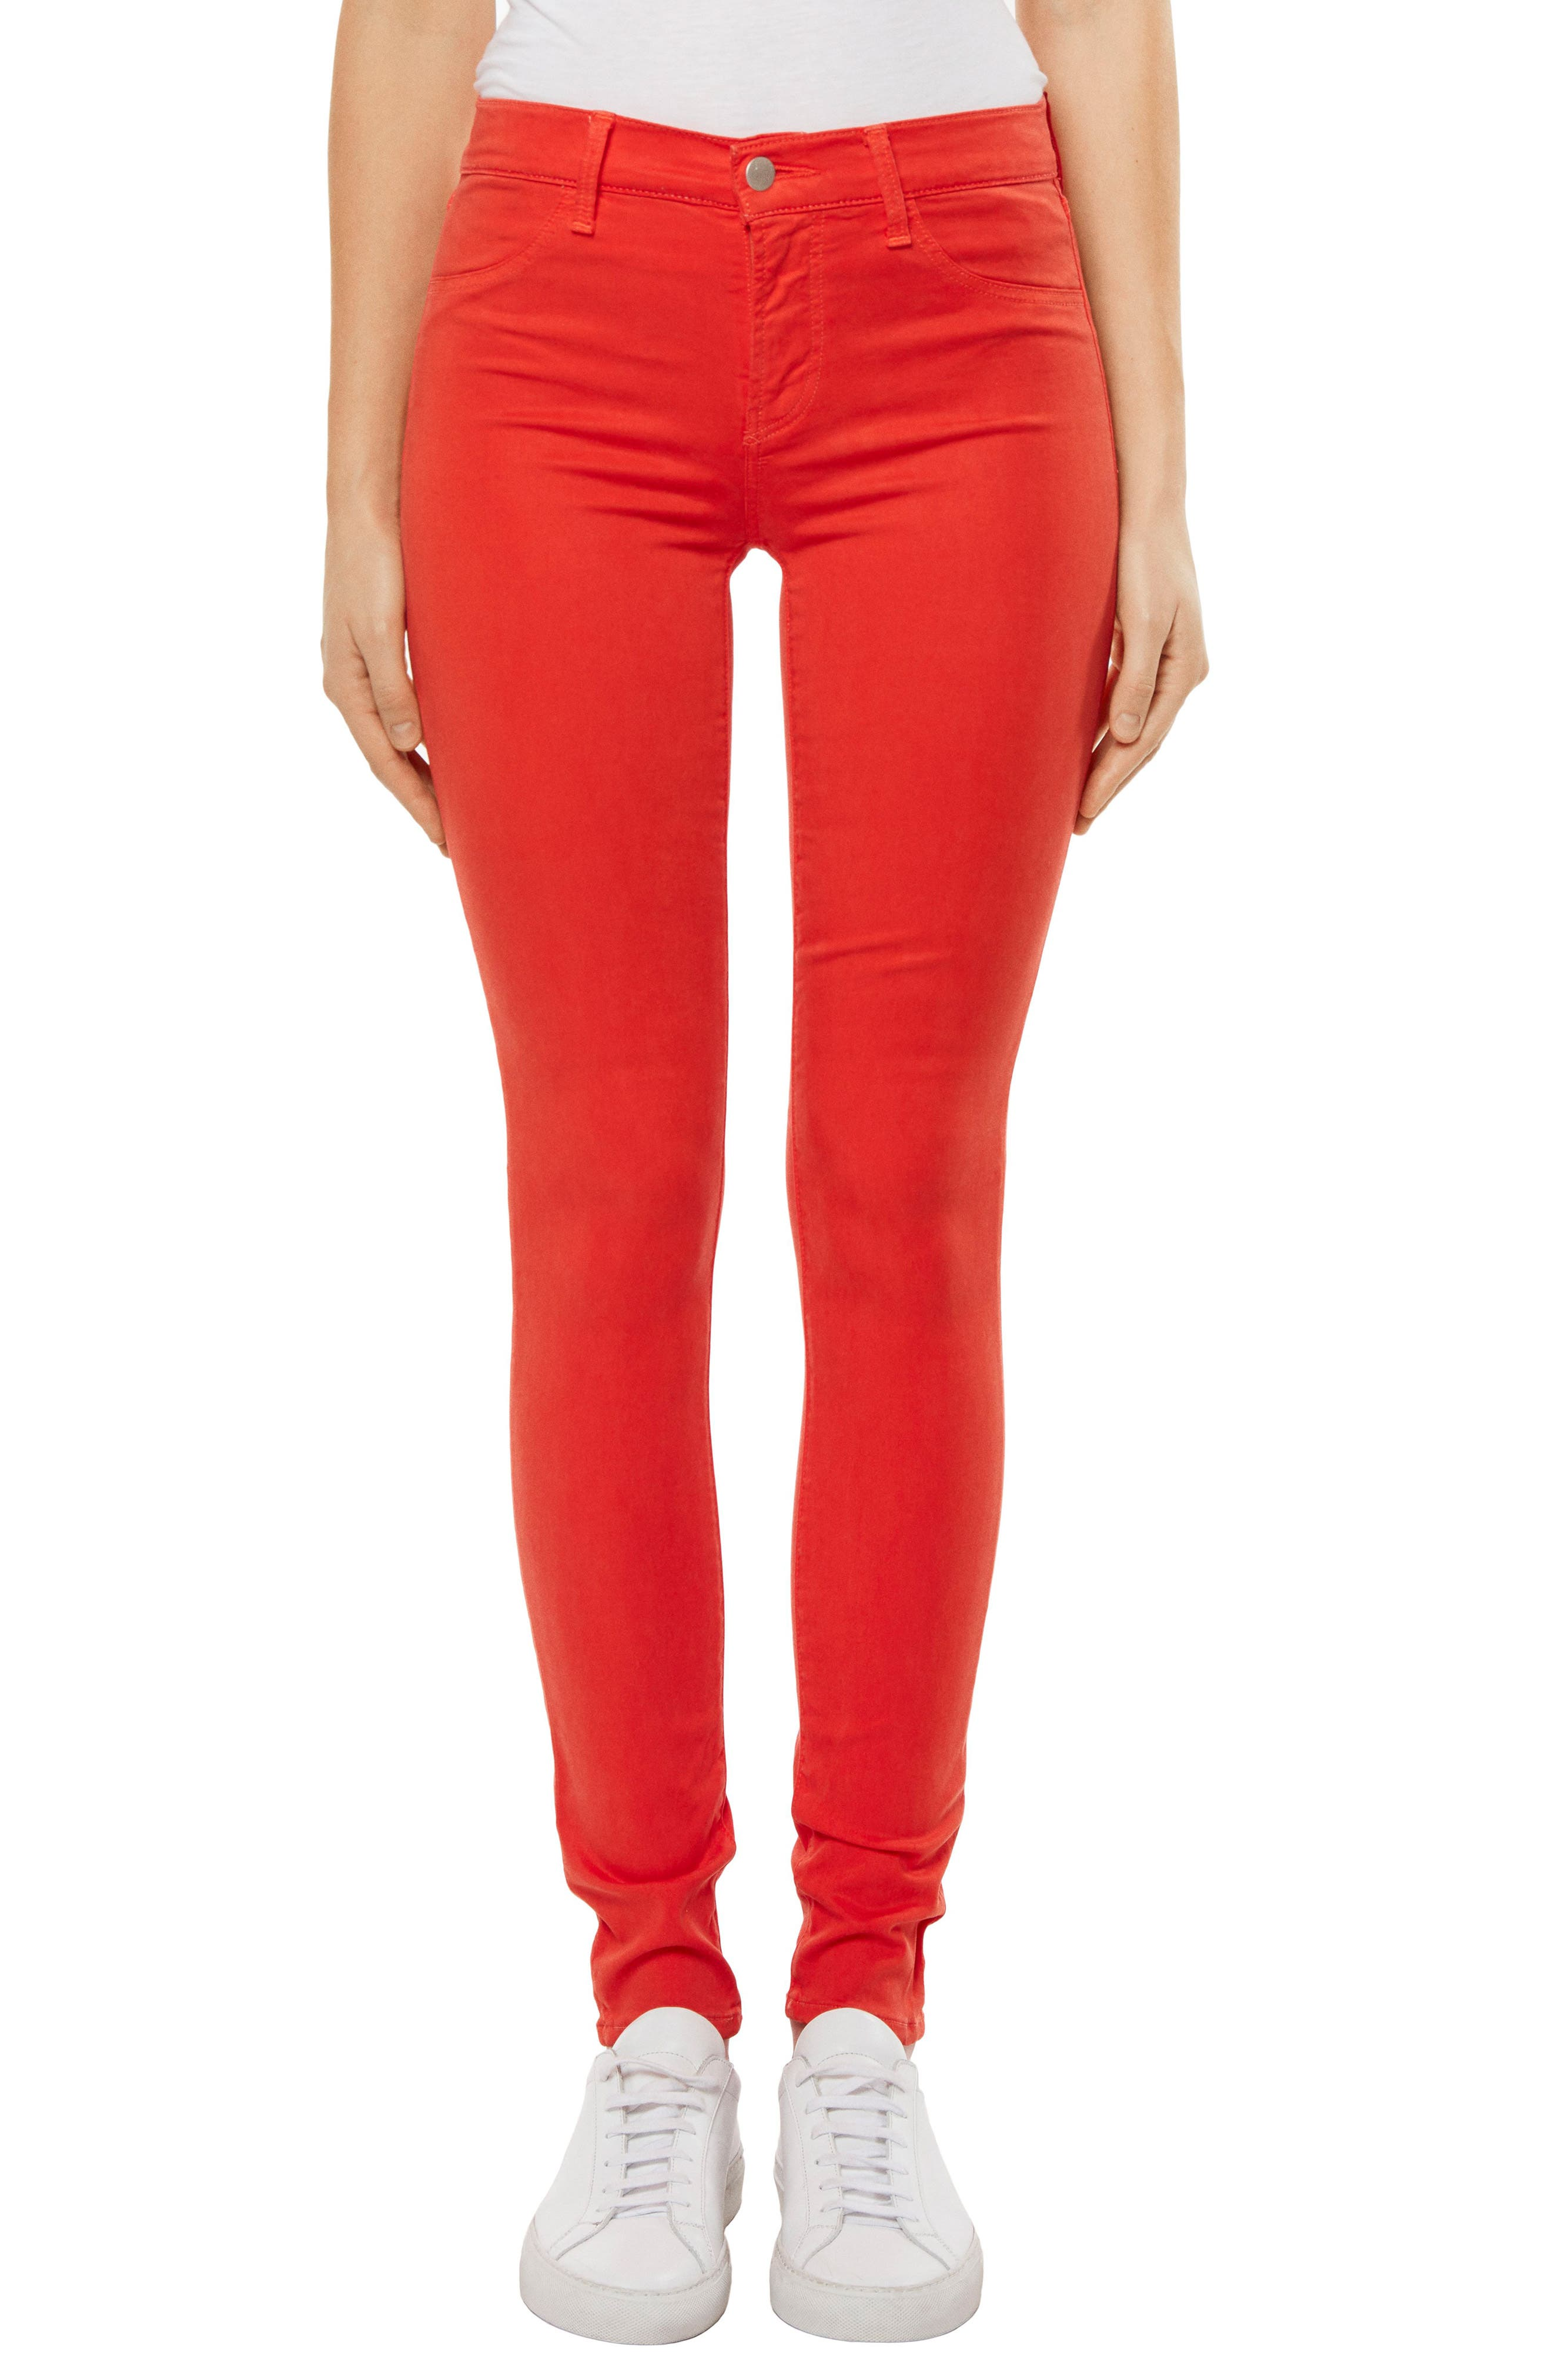 485 Mid Rise Skinny Jeans,                         Main,                         color, Bright Coral